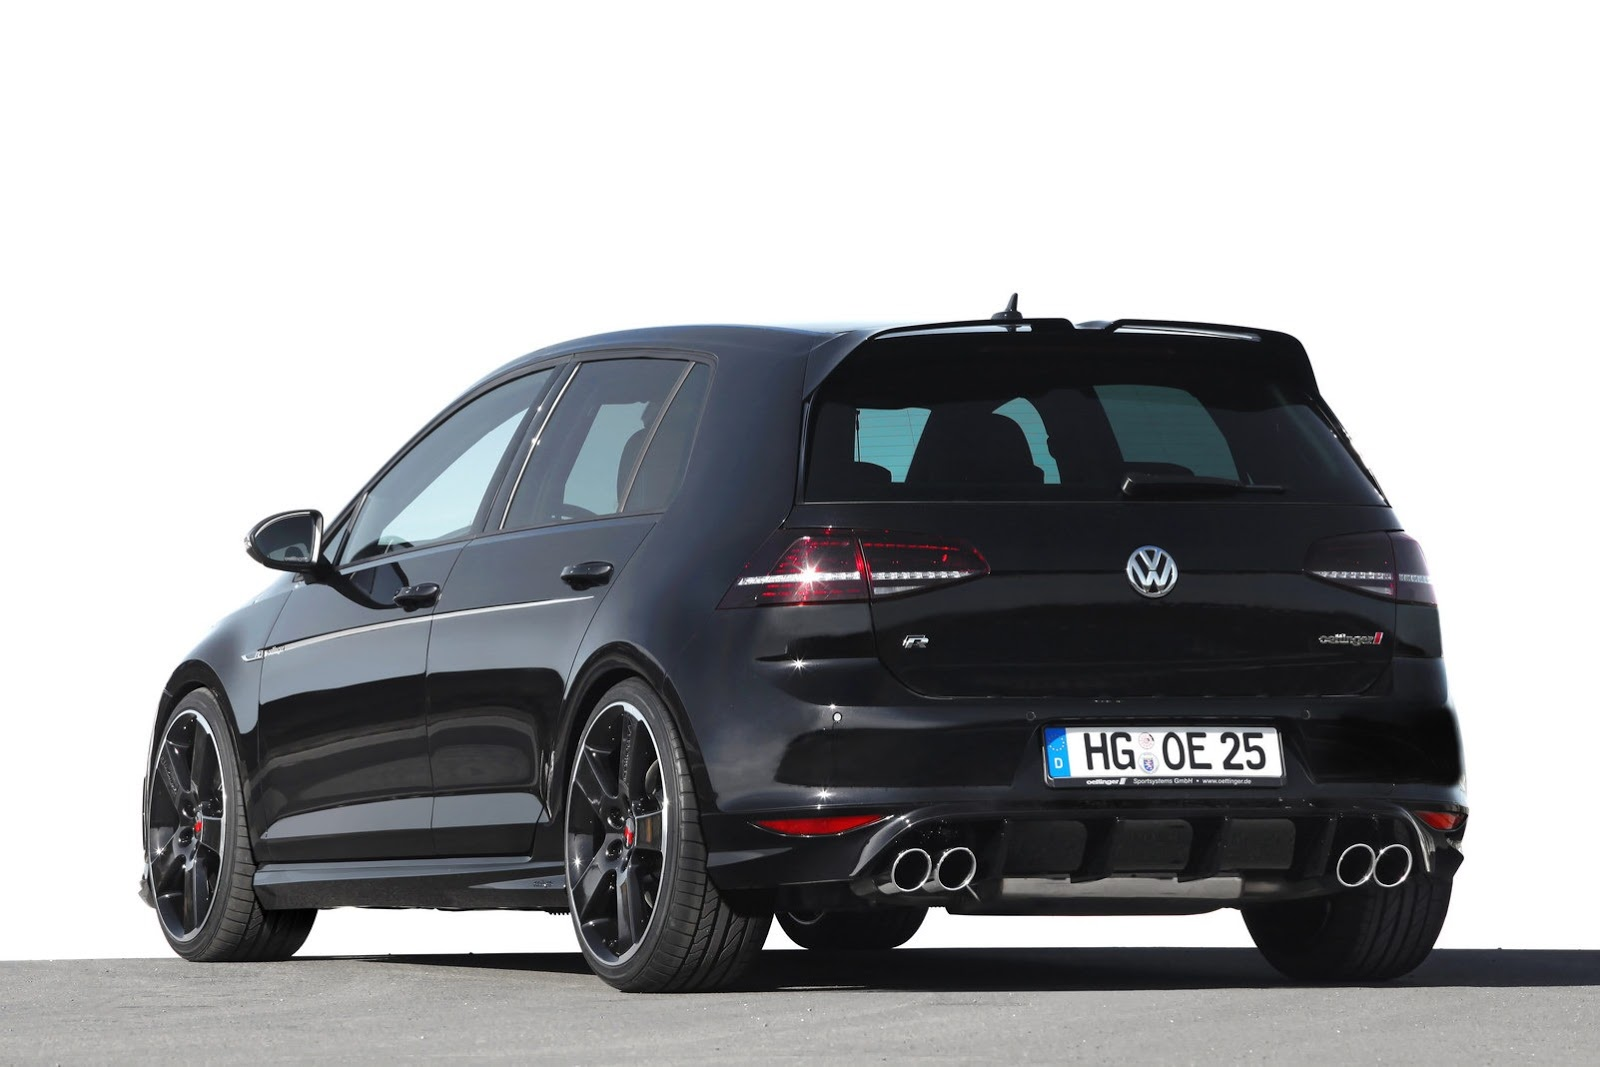 official 400hp volkswagen golf r by oettinger gtspirit. Black Bedroom Furniture Sets. Home Design Ideas